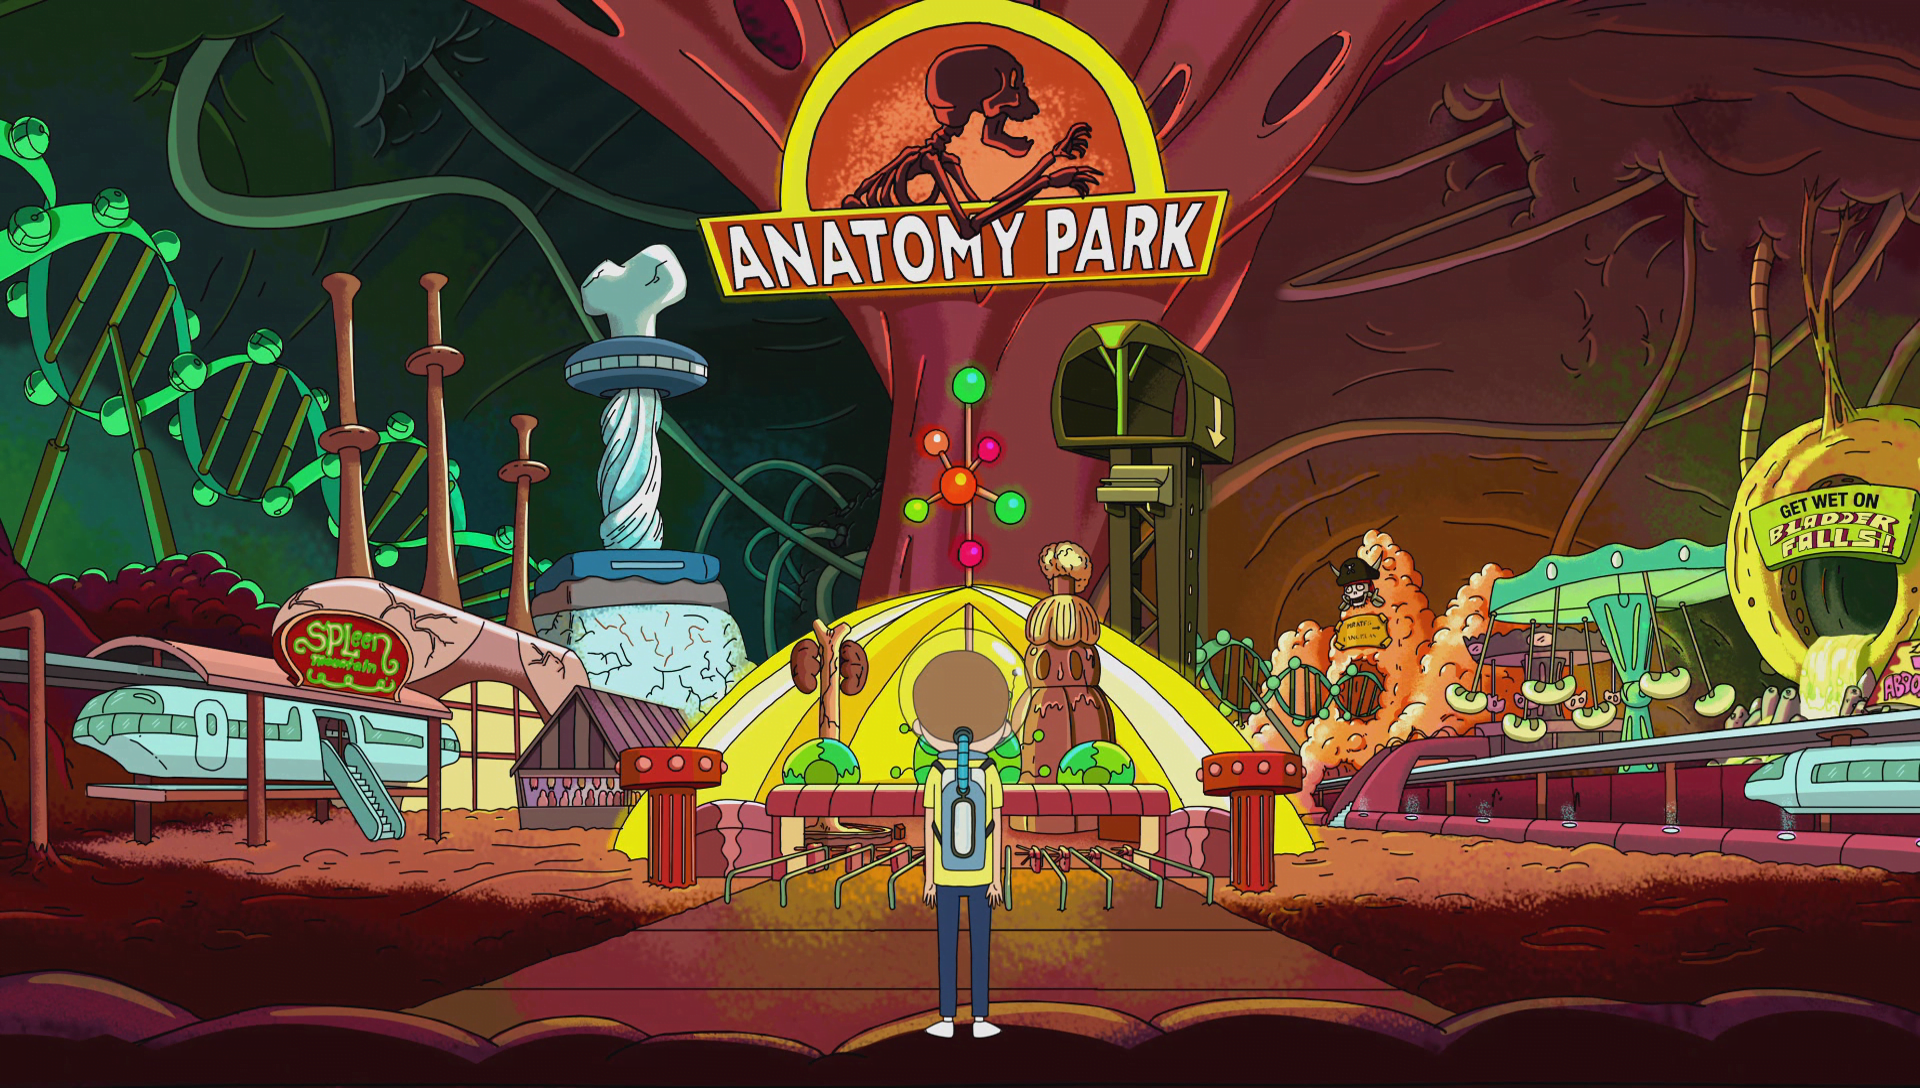 rick and morty anatomy park game review